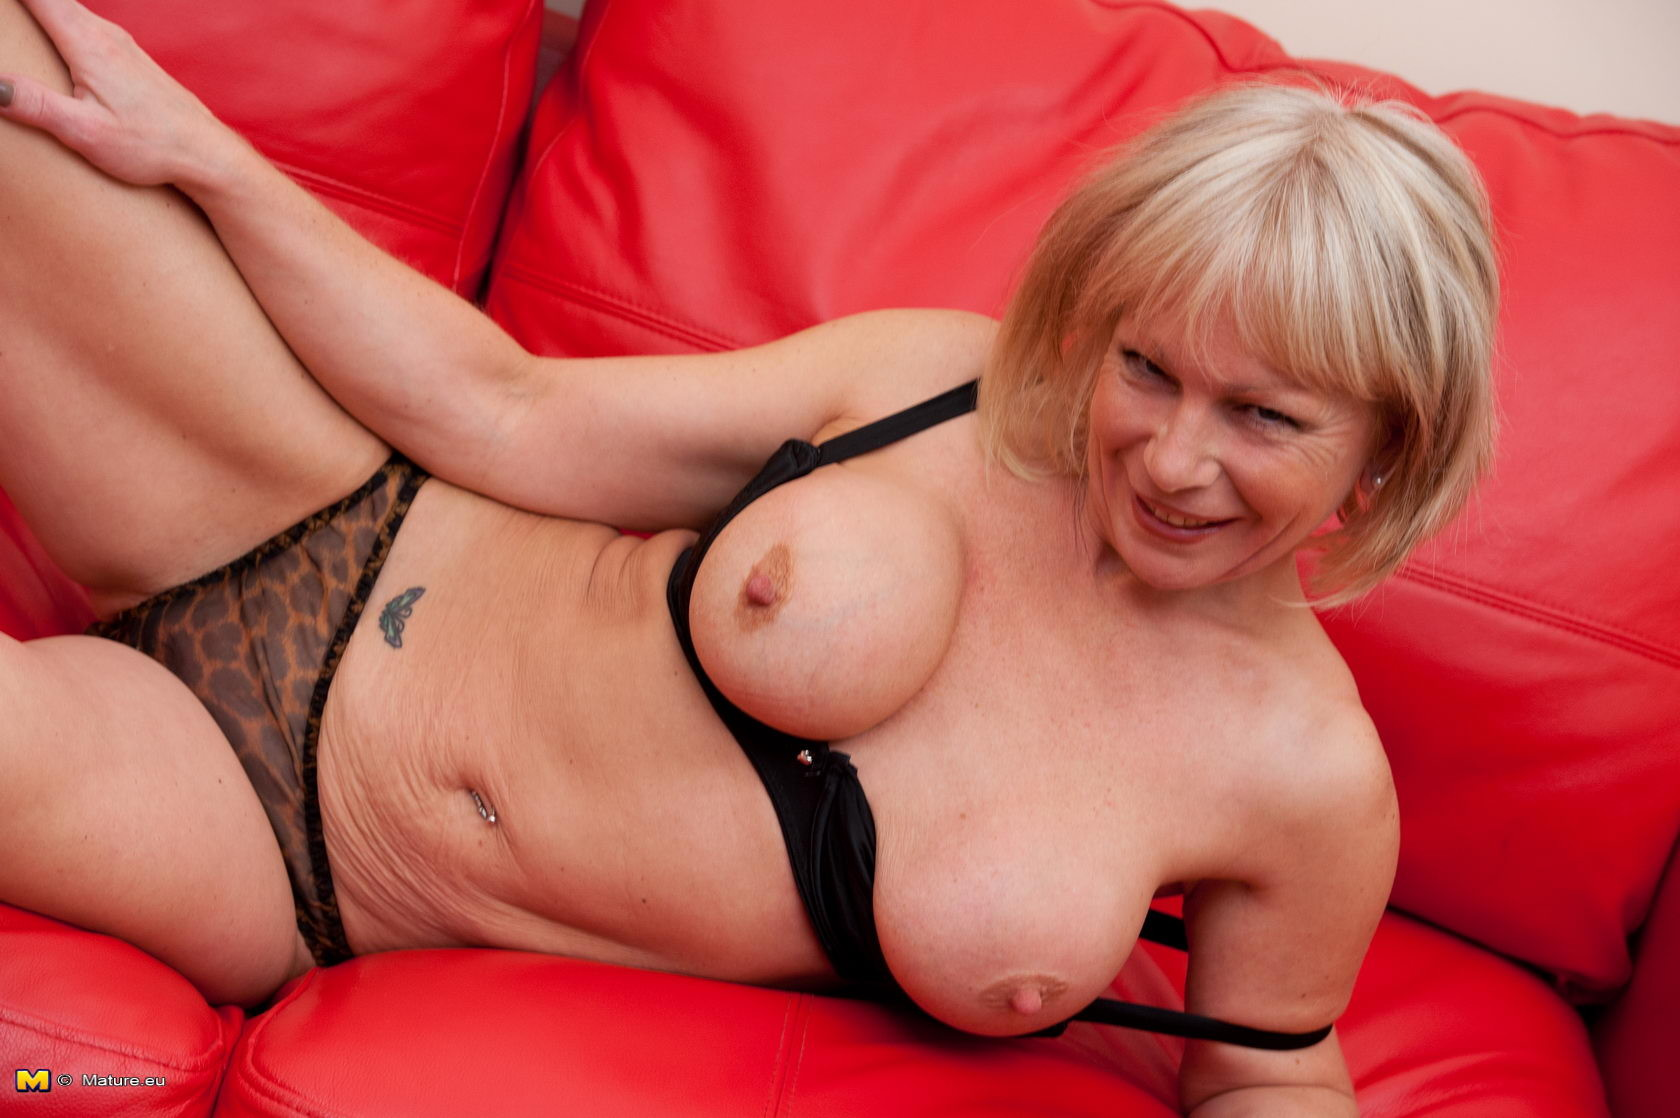 lusty granny has a huge interest to give controlled